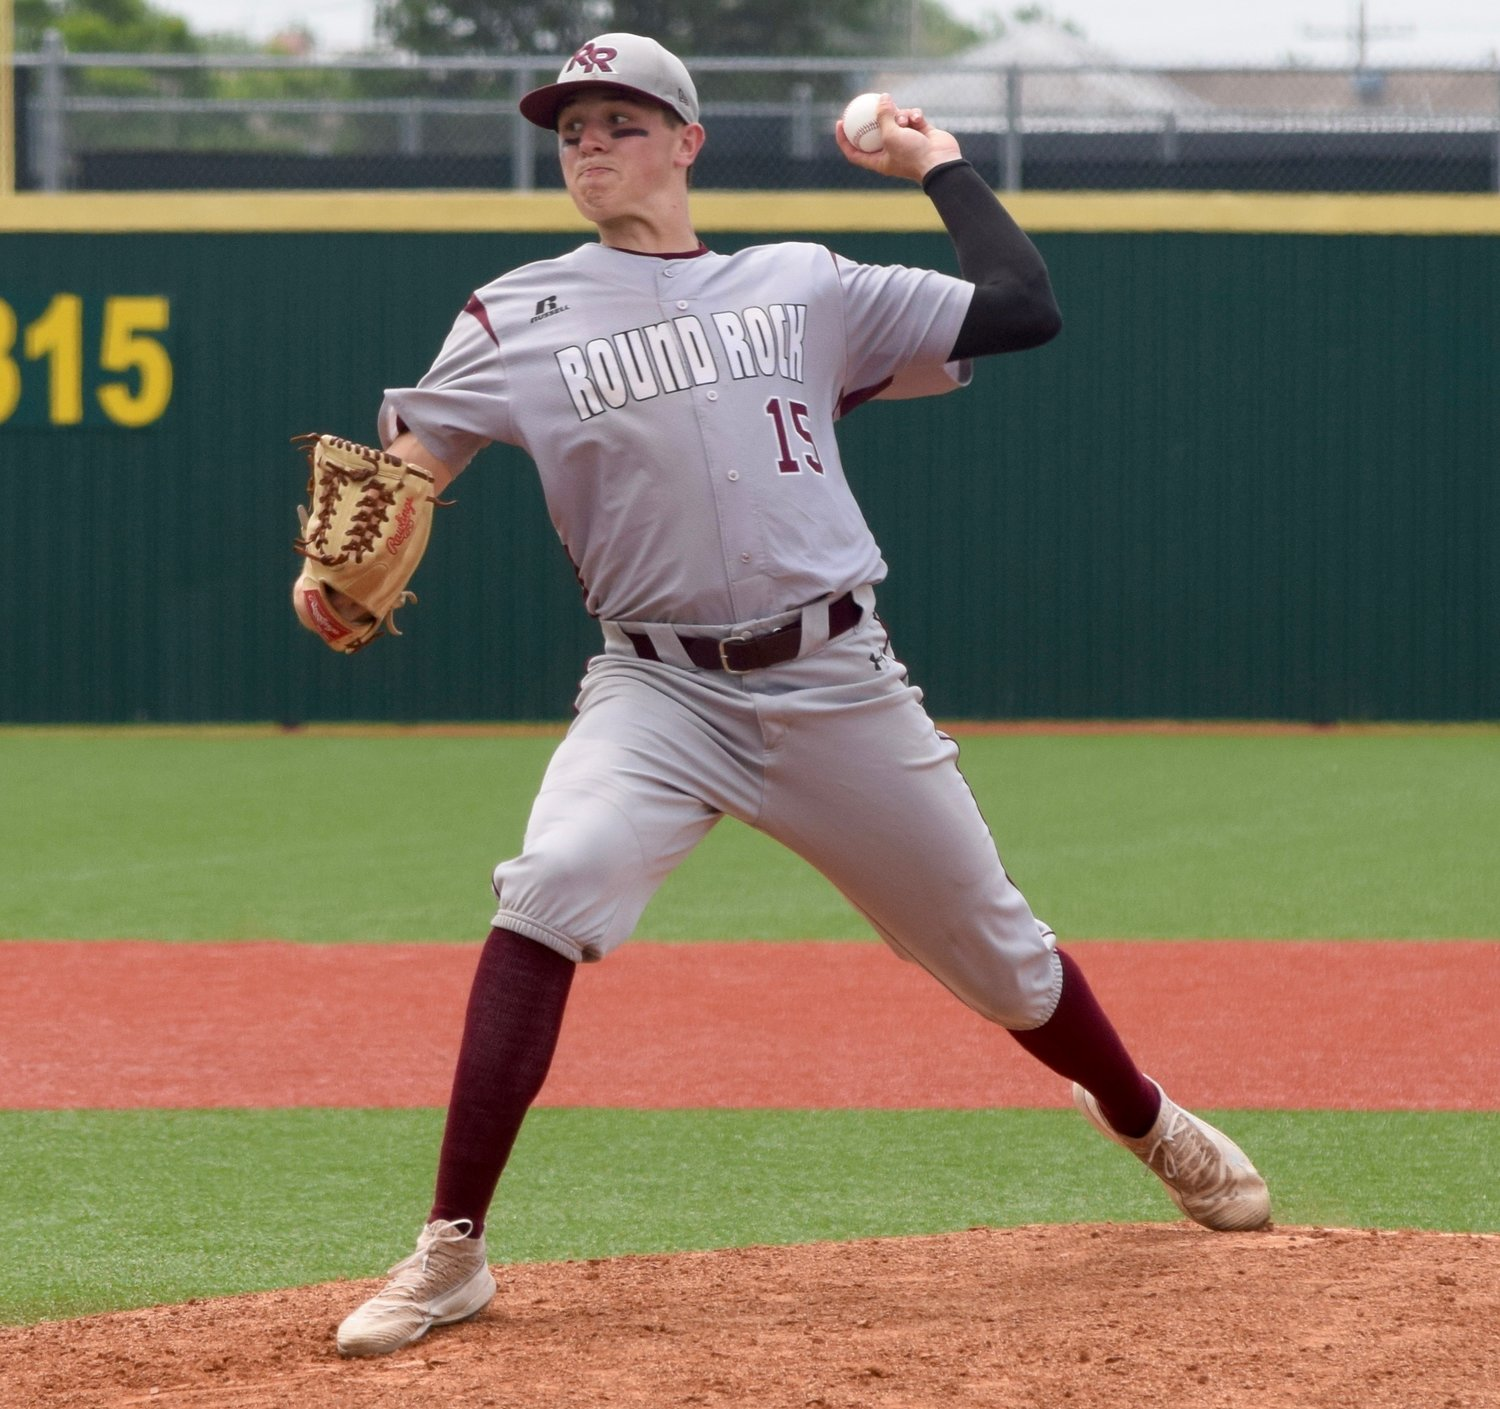 Jared McKenzie and Round Rock lost to top-ranked Cy Ranch Saturday afternoon in Mumford and were eliminated from the playoffs.